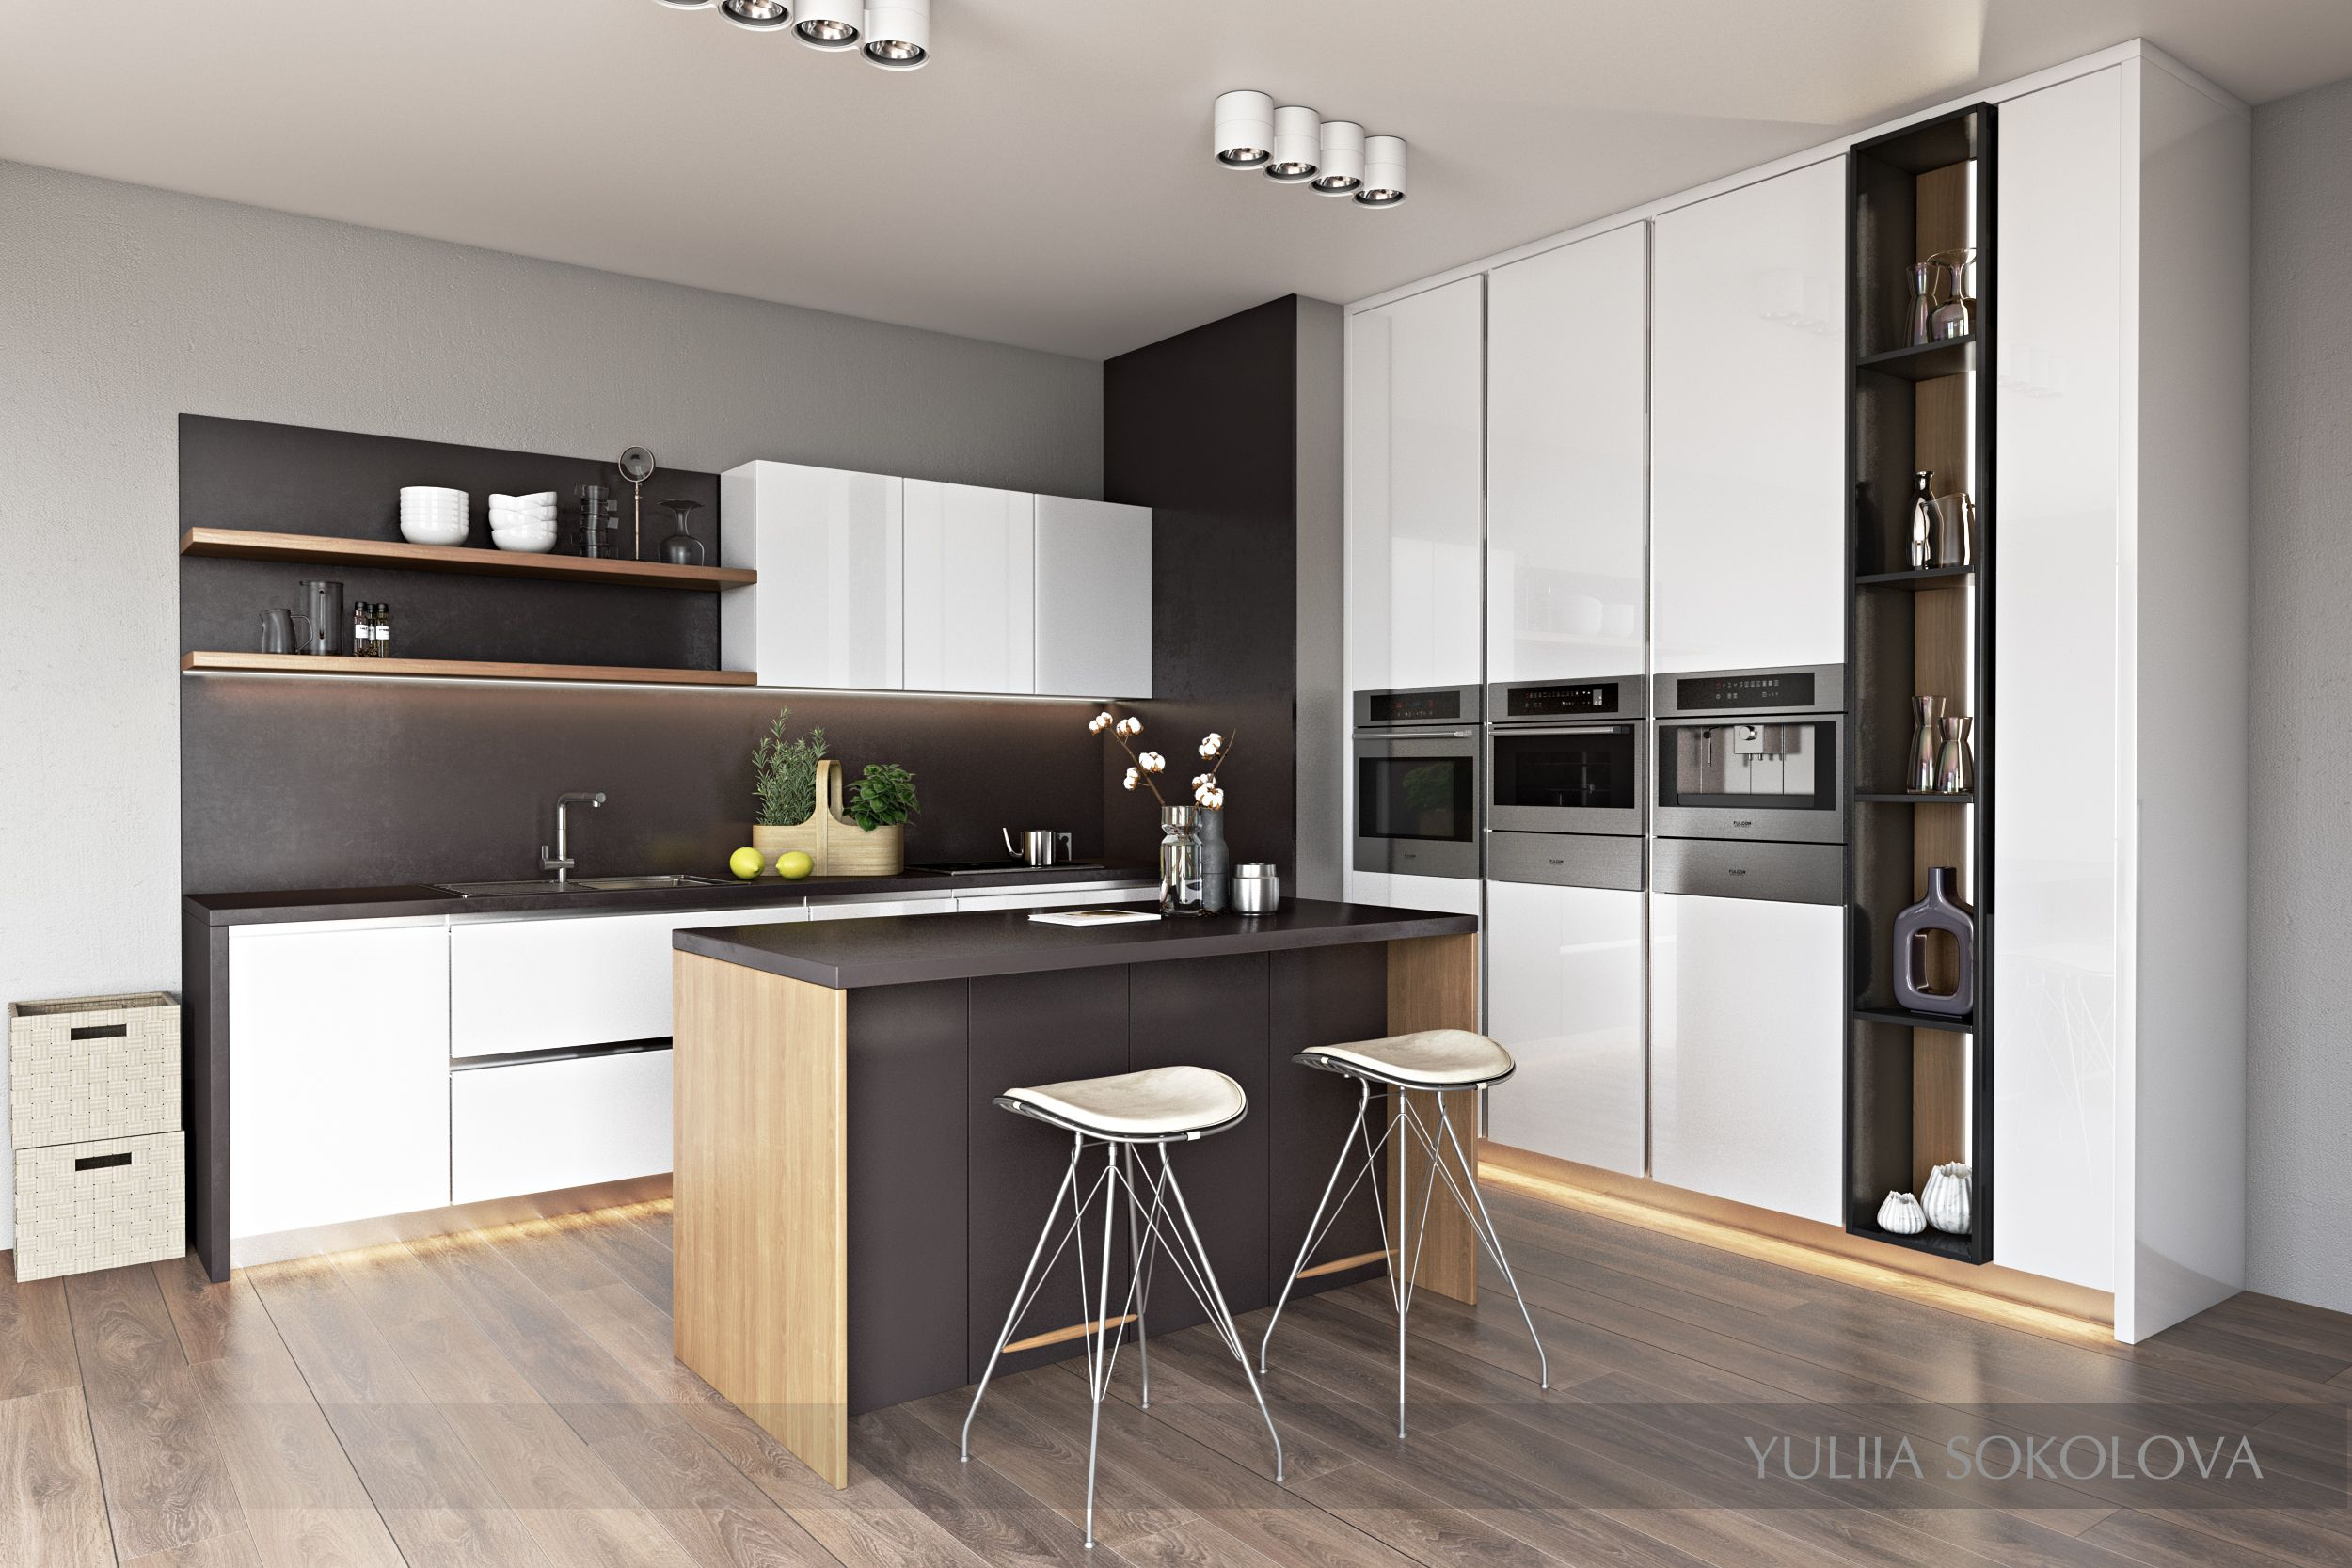 This kitchen was created for the young family simplicity of the